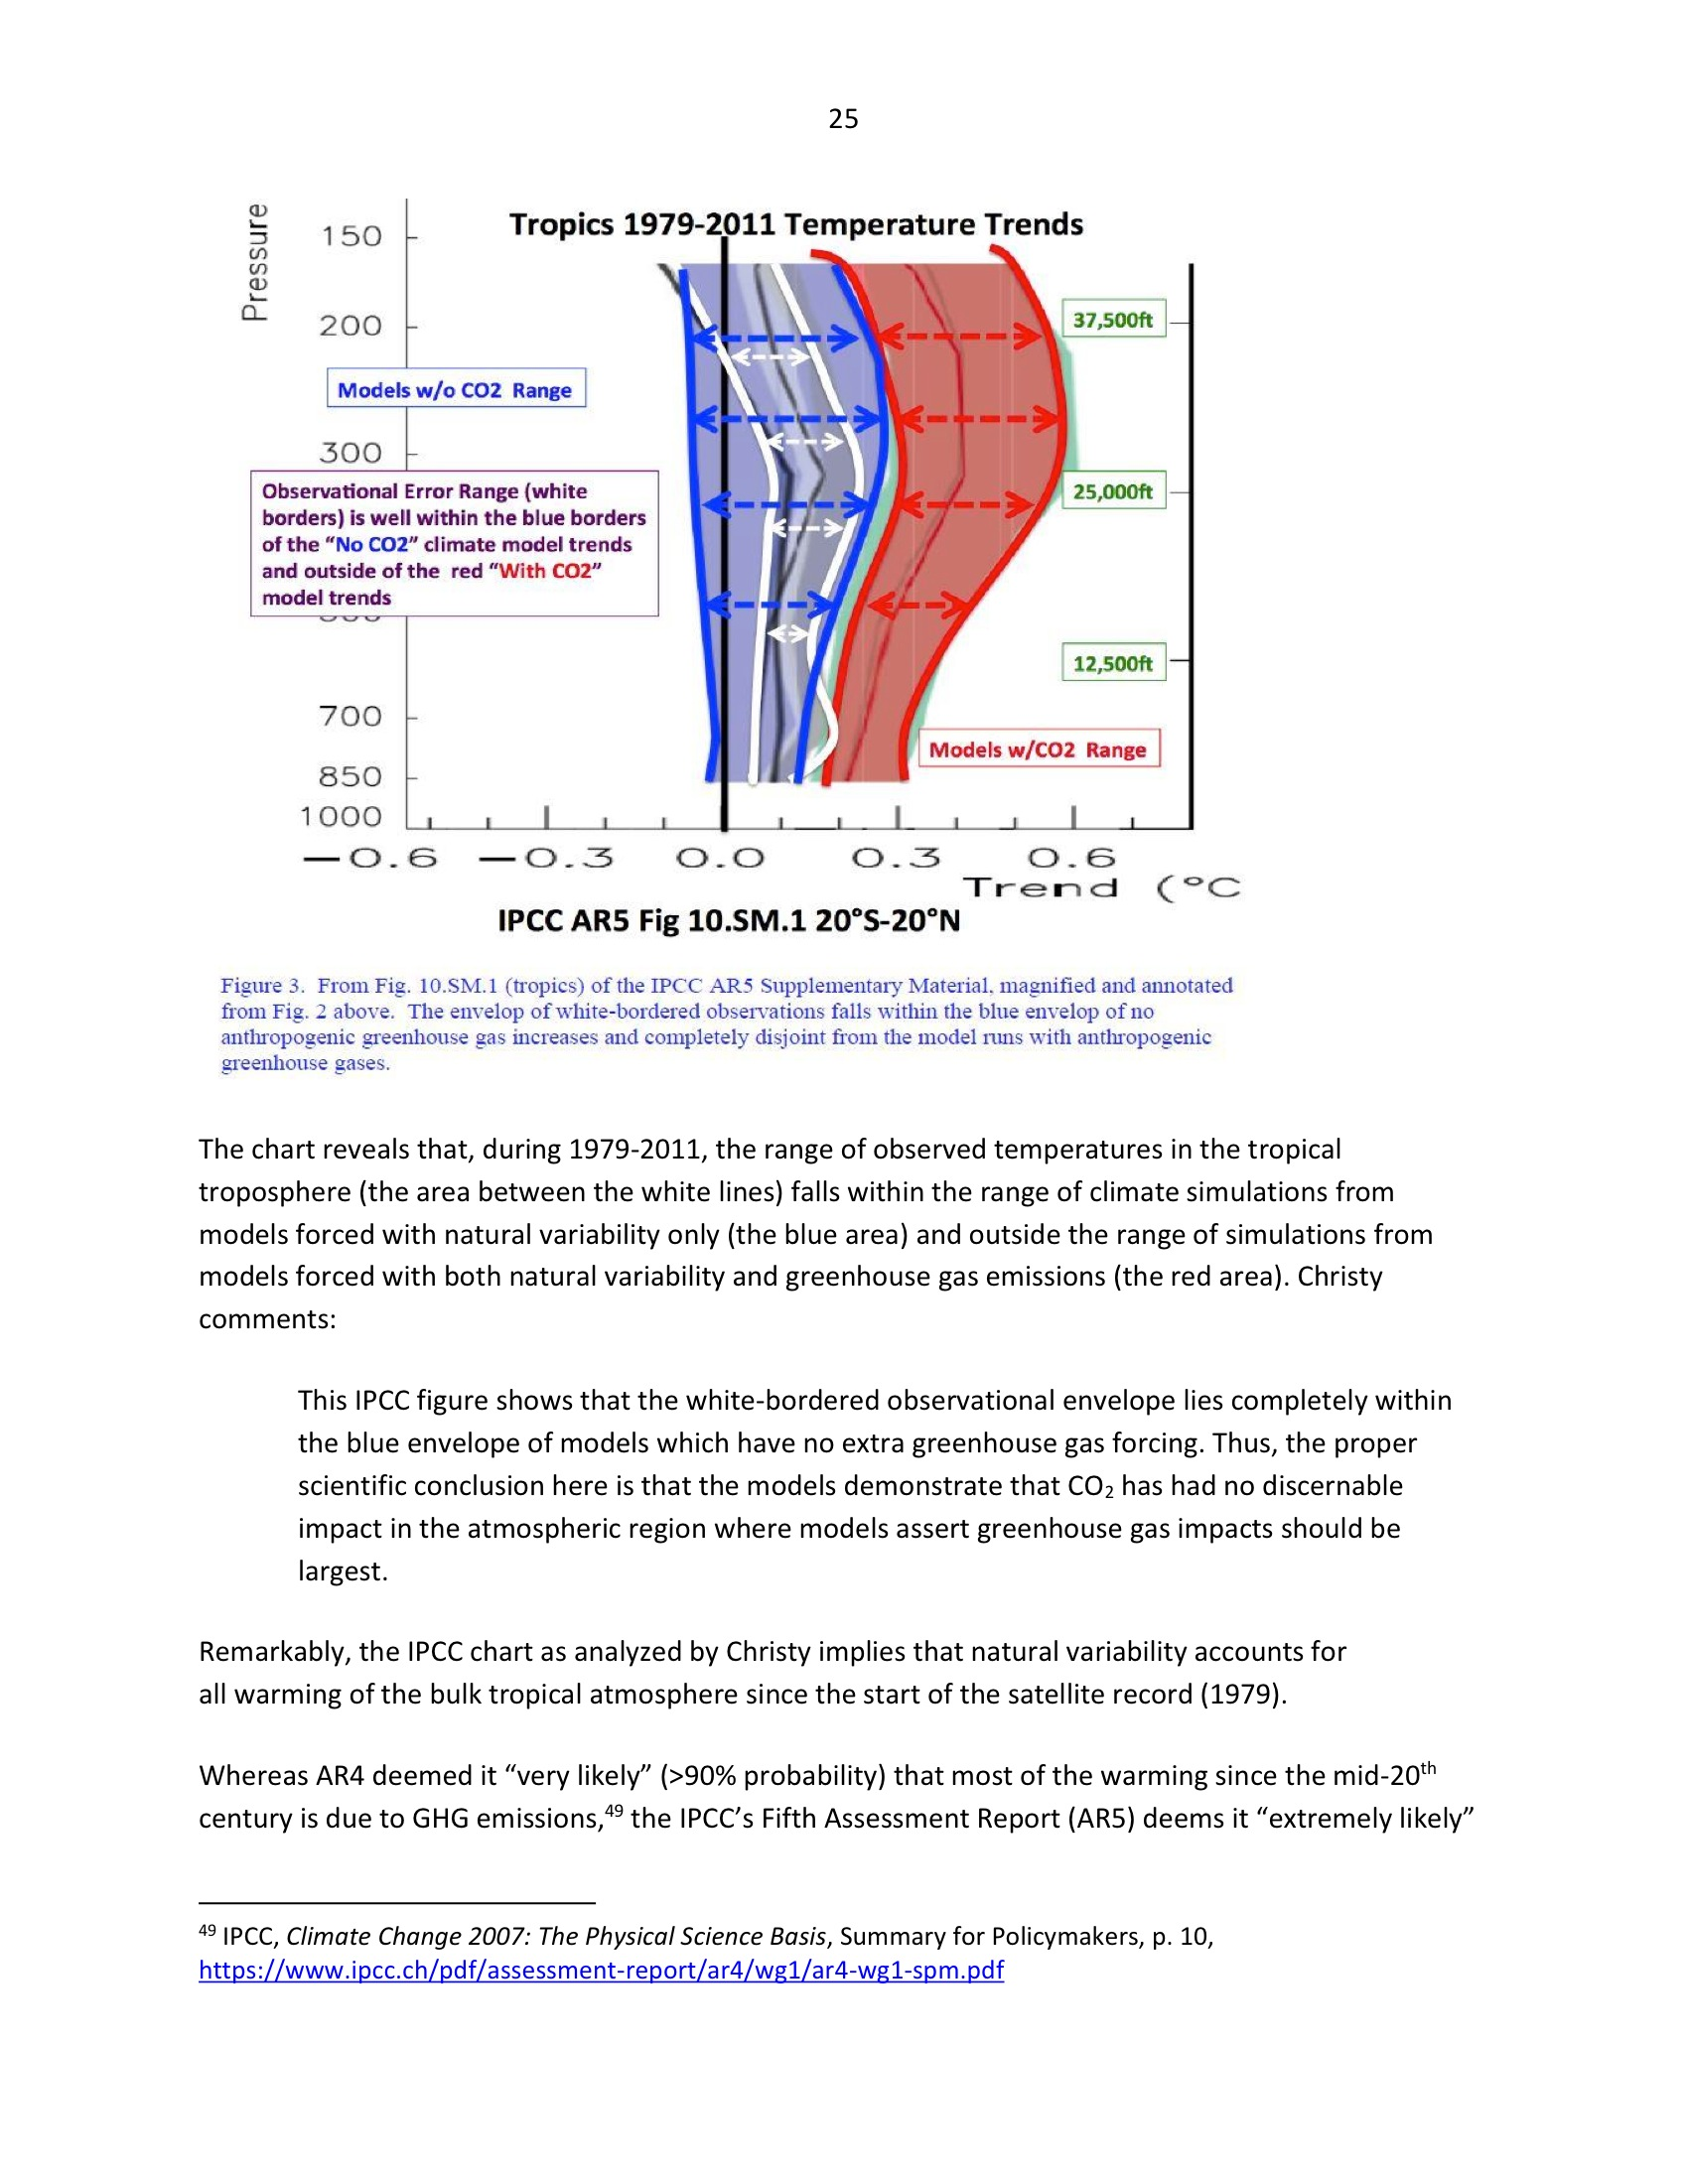 Marlo Lewis Competitive Enterprise Institute and Free Market Allies Comment Letter on NEPA GHG Guidance Document 97-25